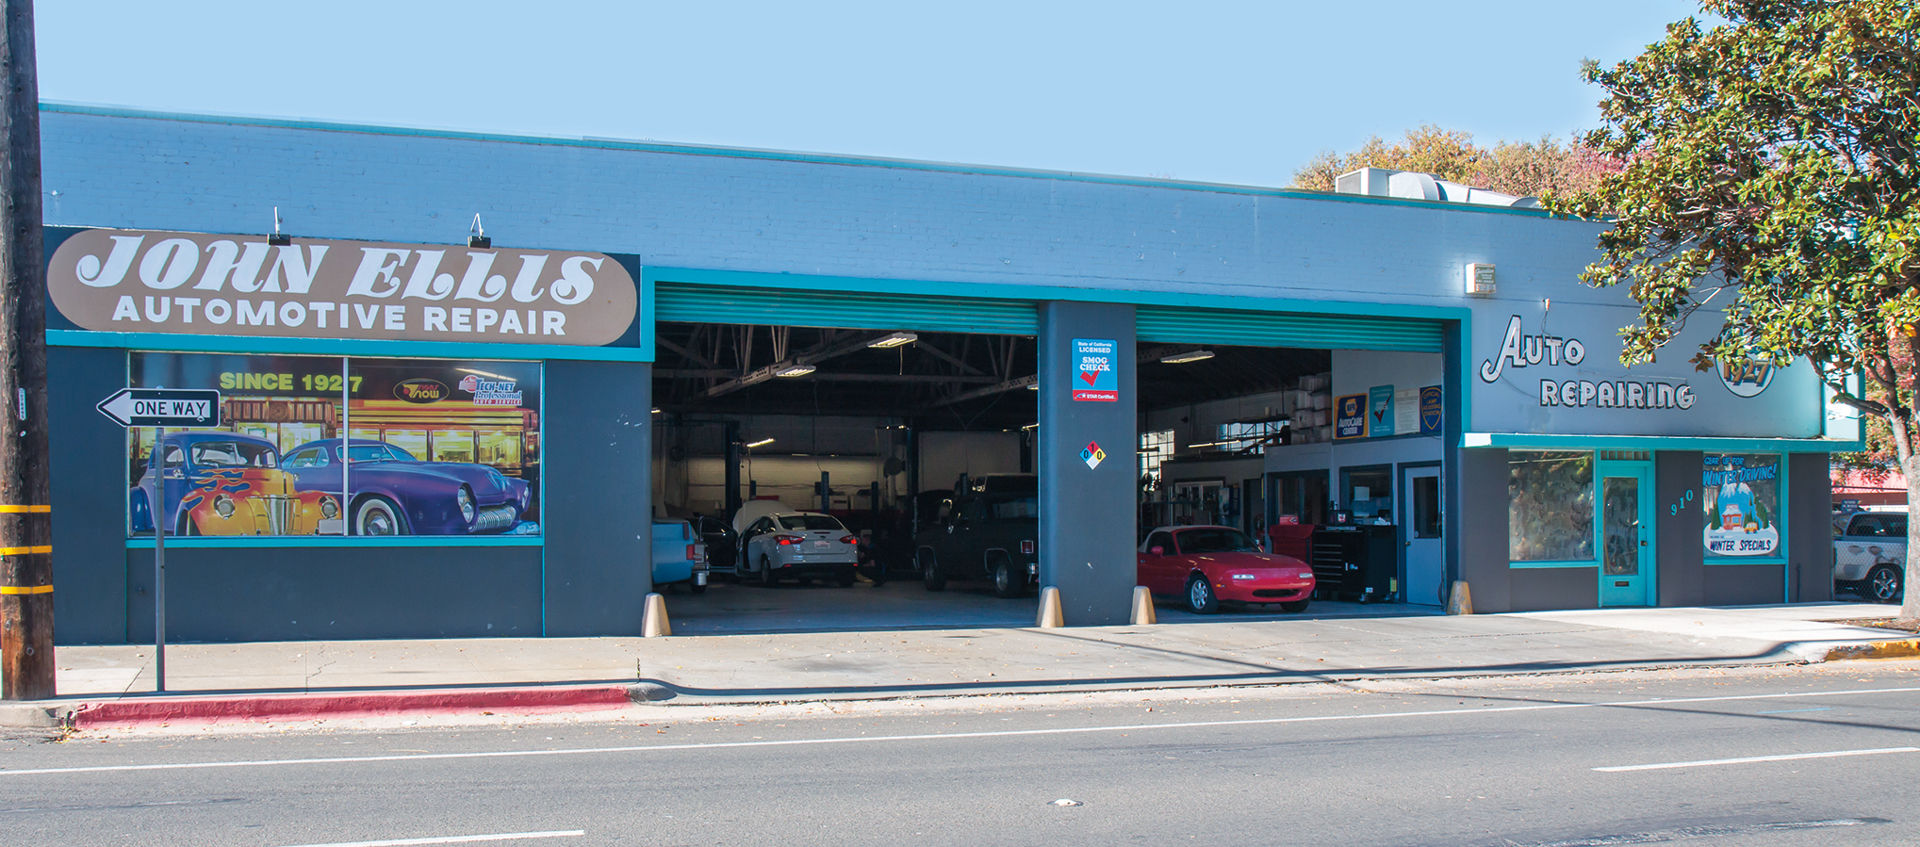 John-Ellis-And-Son-Complete-Auto-Repair-And-Maintenance-Sacramento-CA-29.jpg